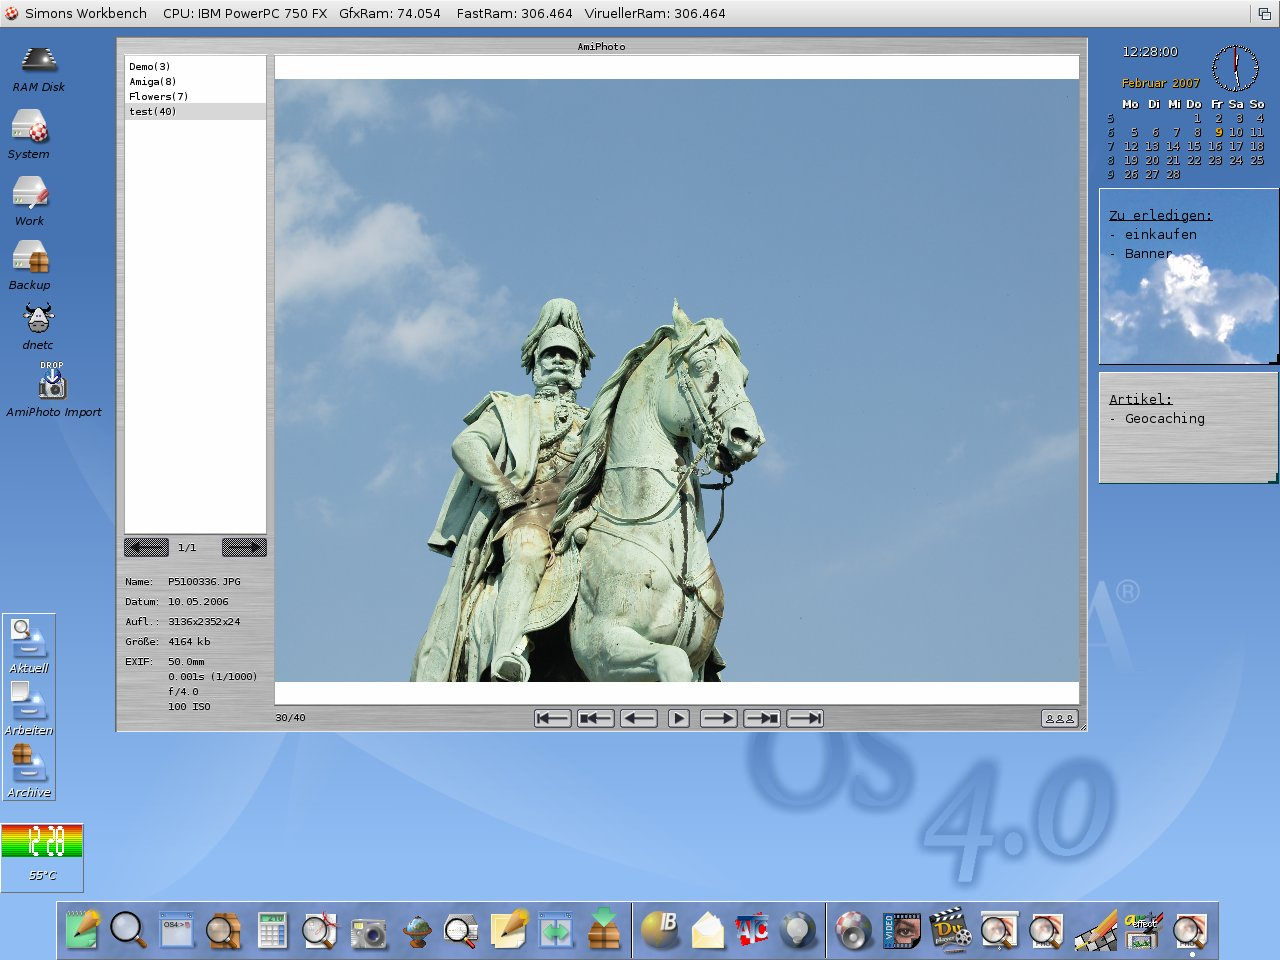 AmigaOS4 final with AmiPhoto 1.5 (full)